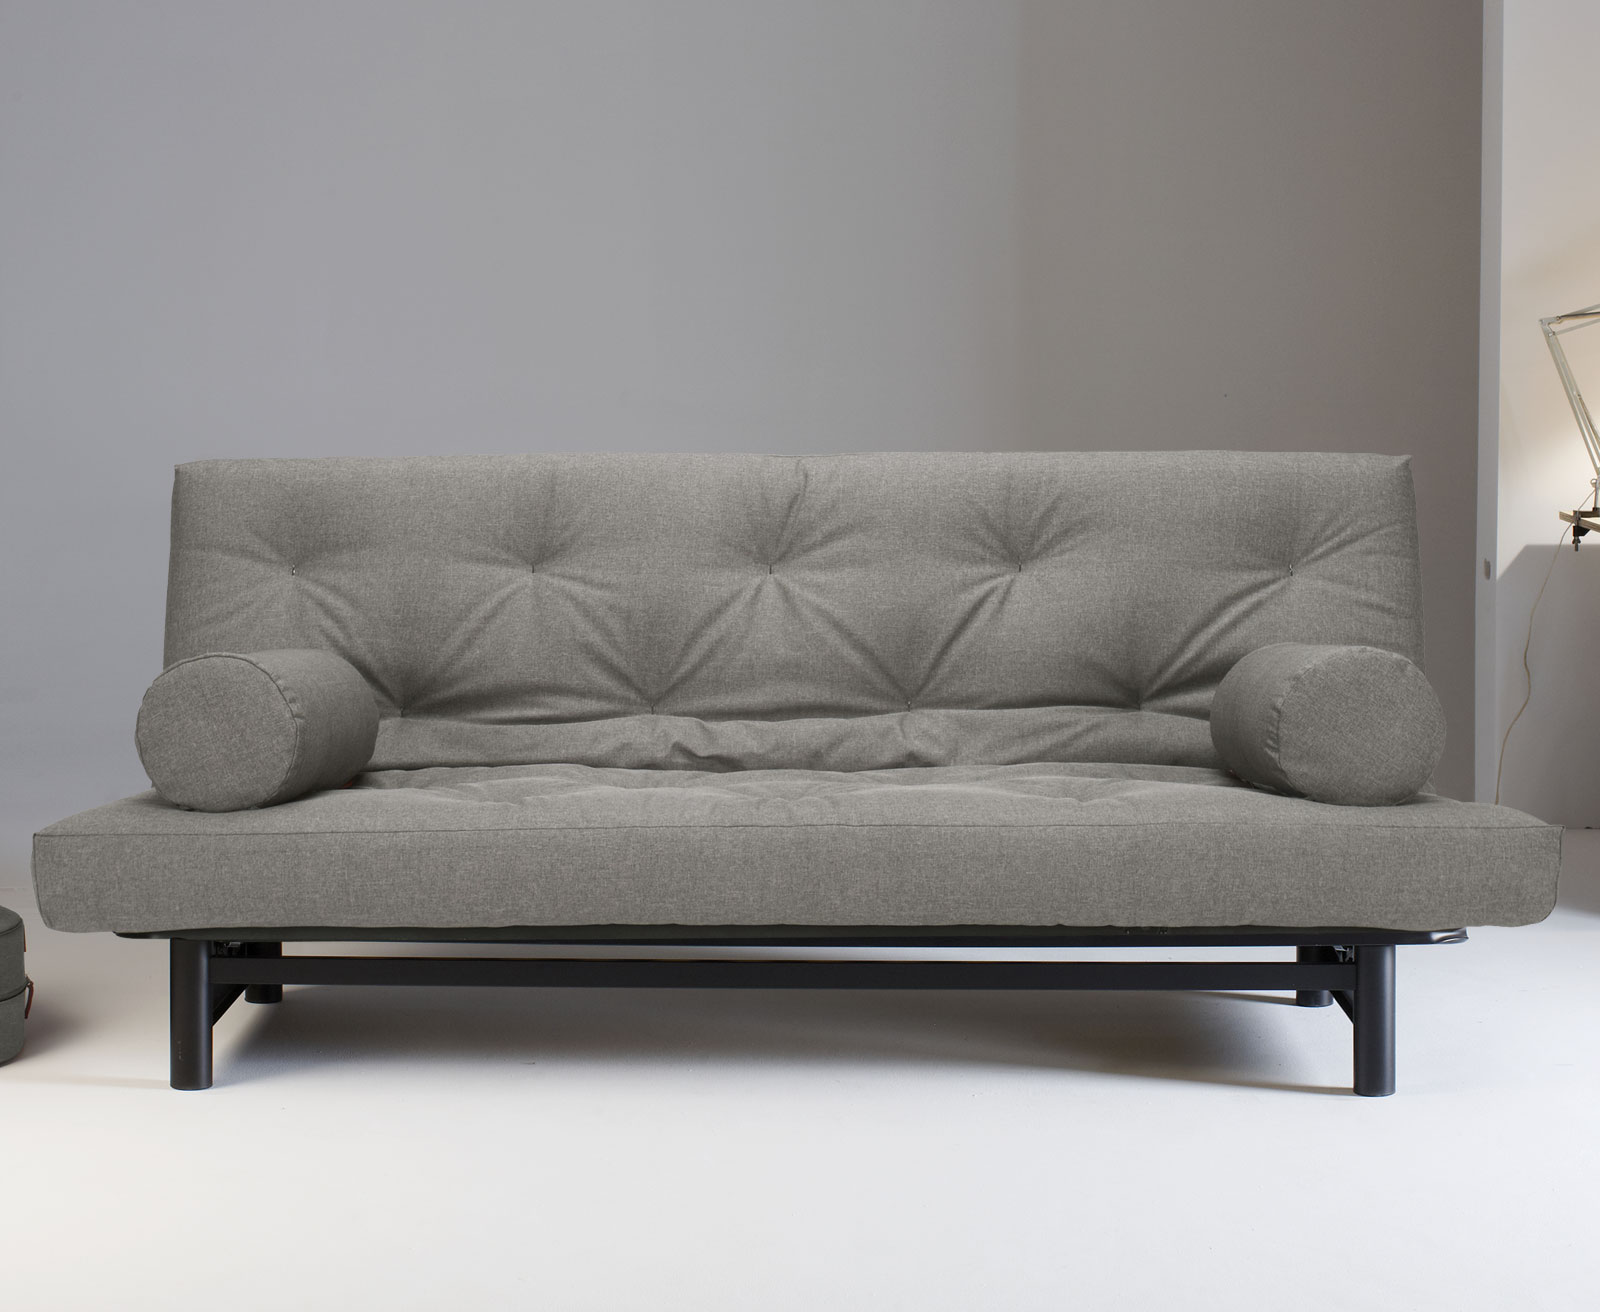 Bettsofa Xenia Schlafsofa Querschlfer Mit Bettkasten Trendy Struktur With